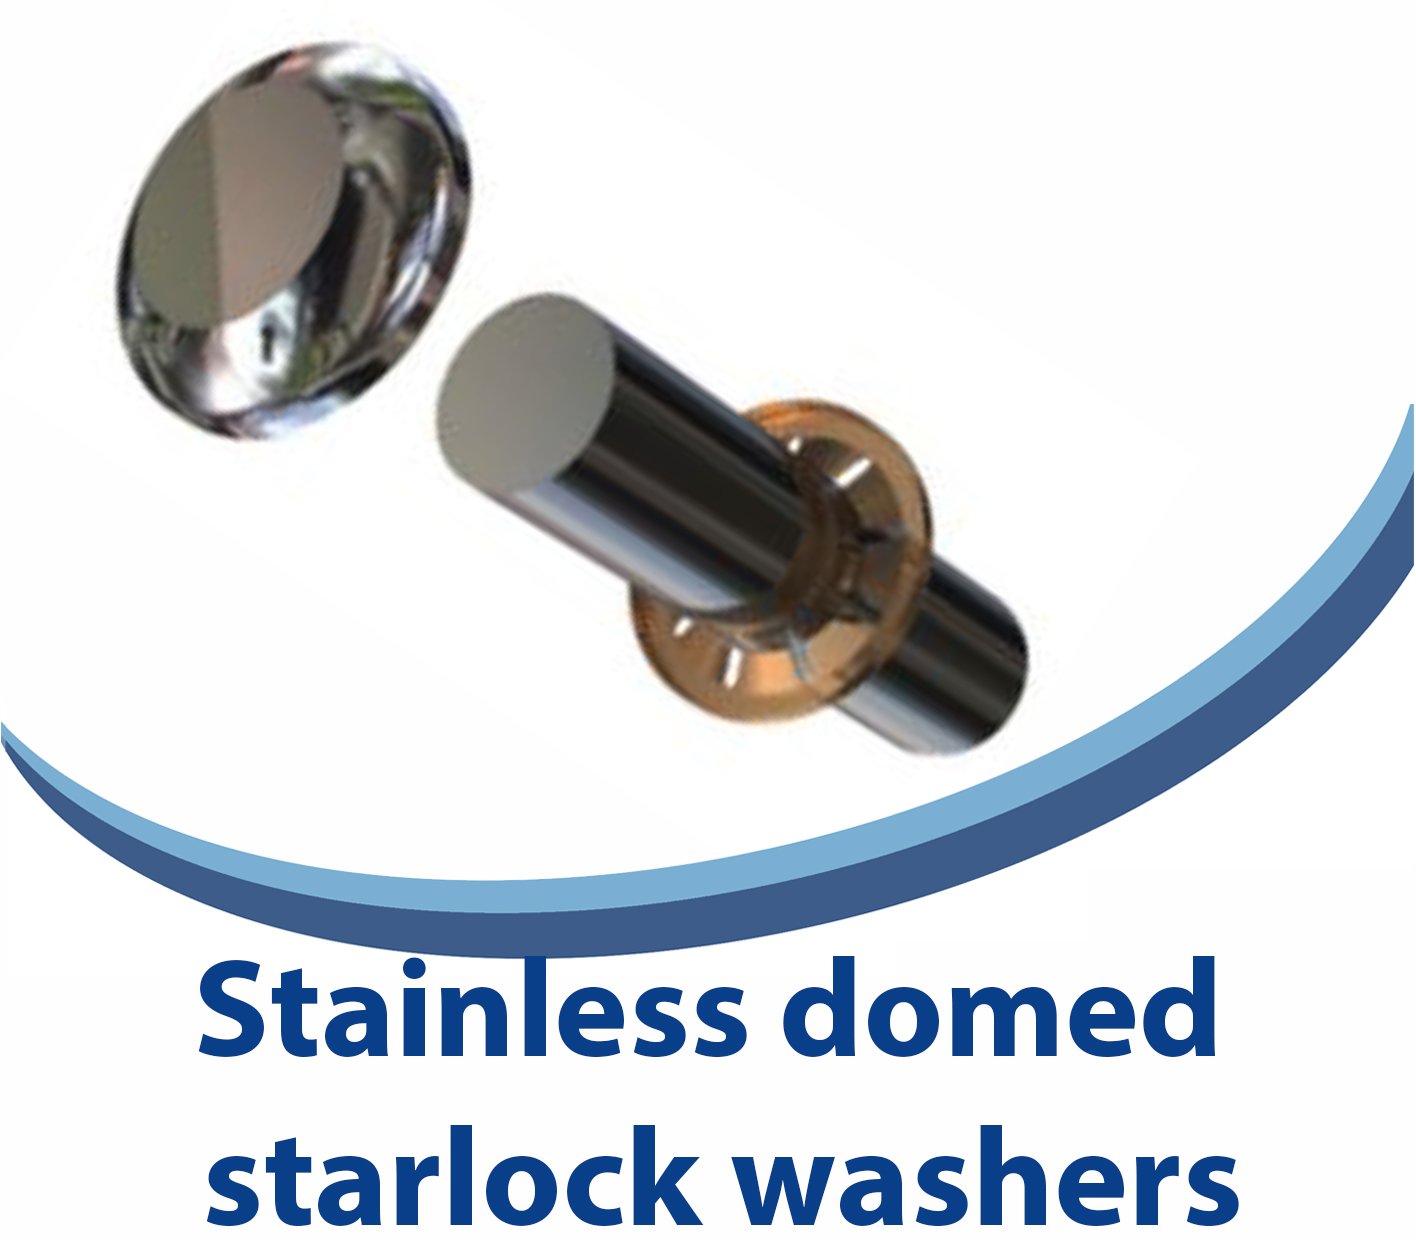 Stainless domed starlock washers